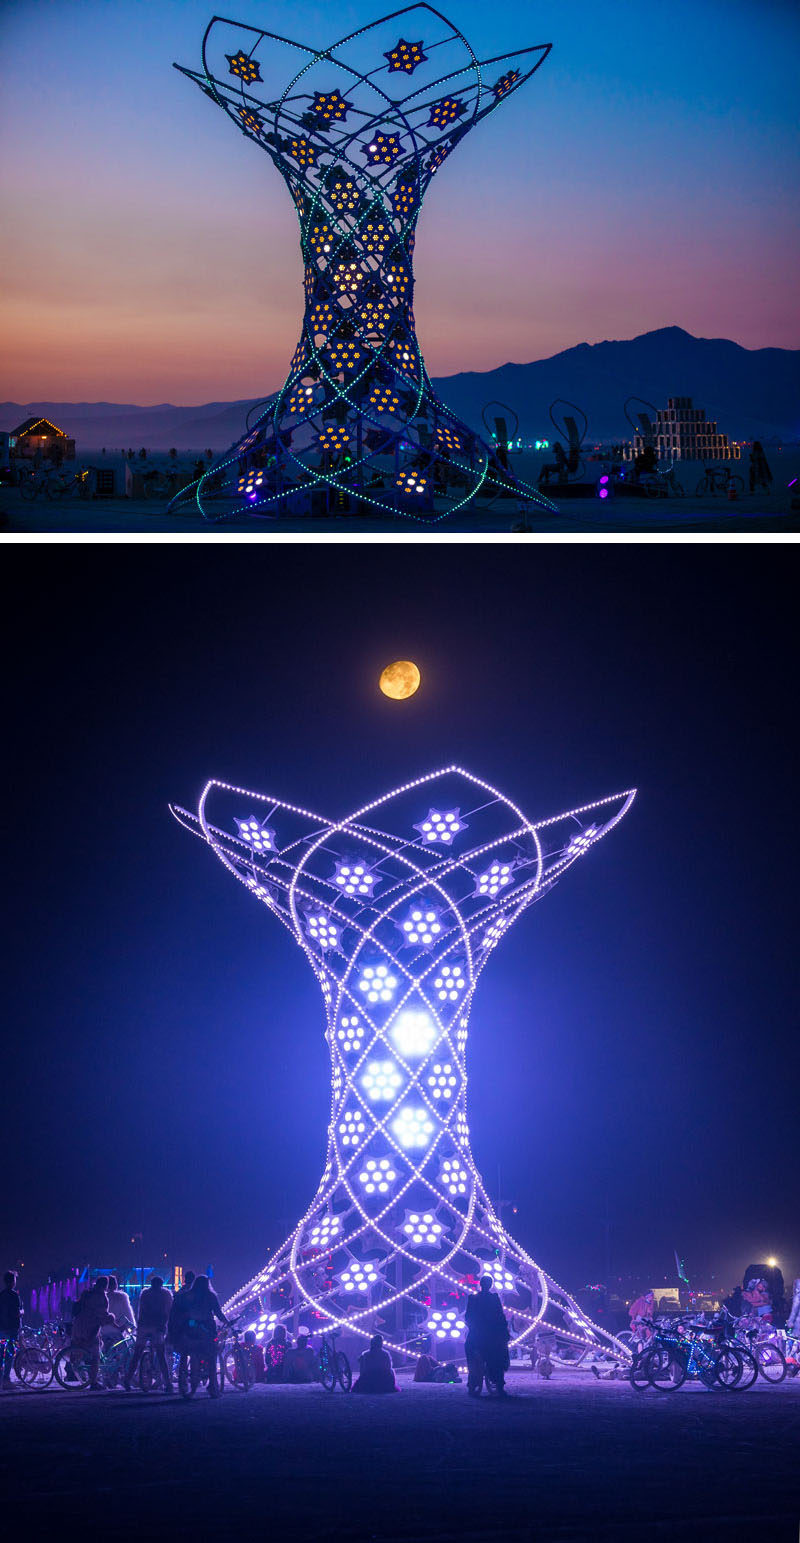 Ilumina is a 37-foot tall interactive art installation that was designed by Pablo Gonzalez Vargas and was shown at Burning Man 2017. #Sculpture #ArtInstallation #Design #Art